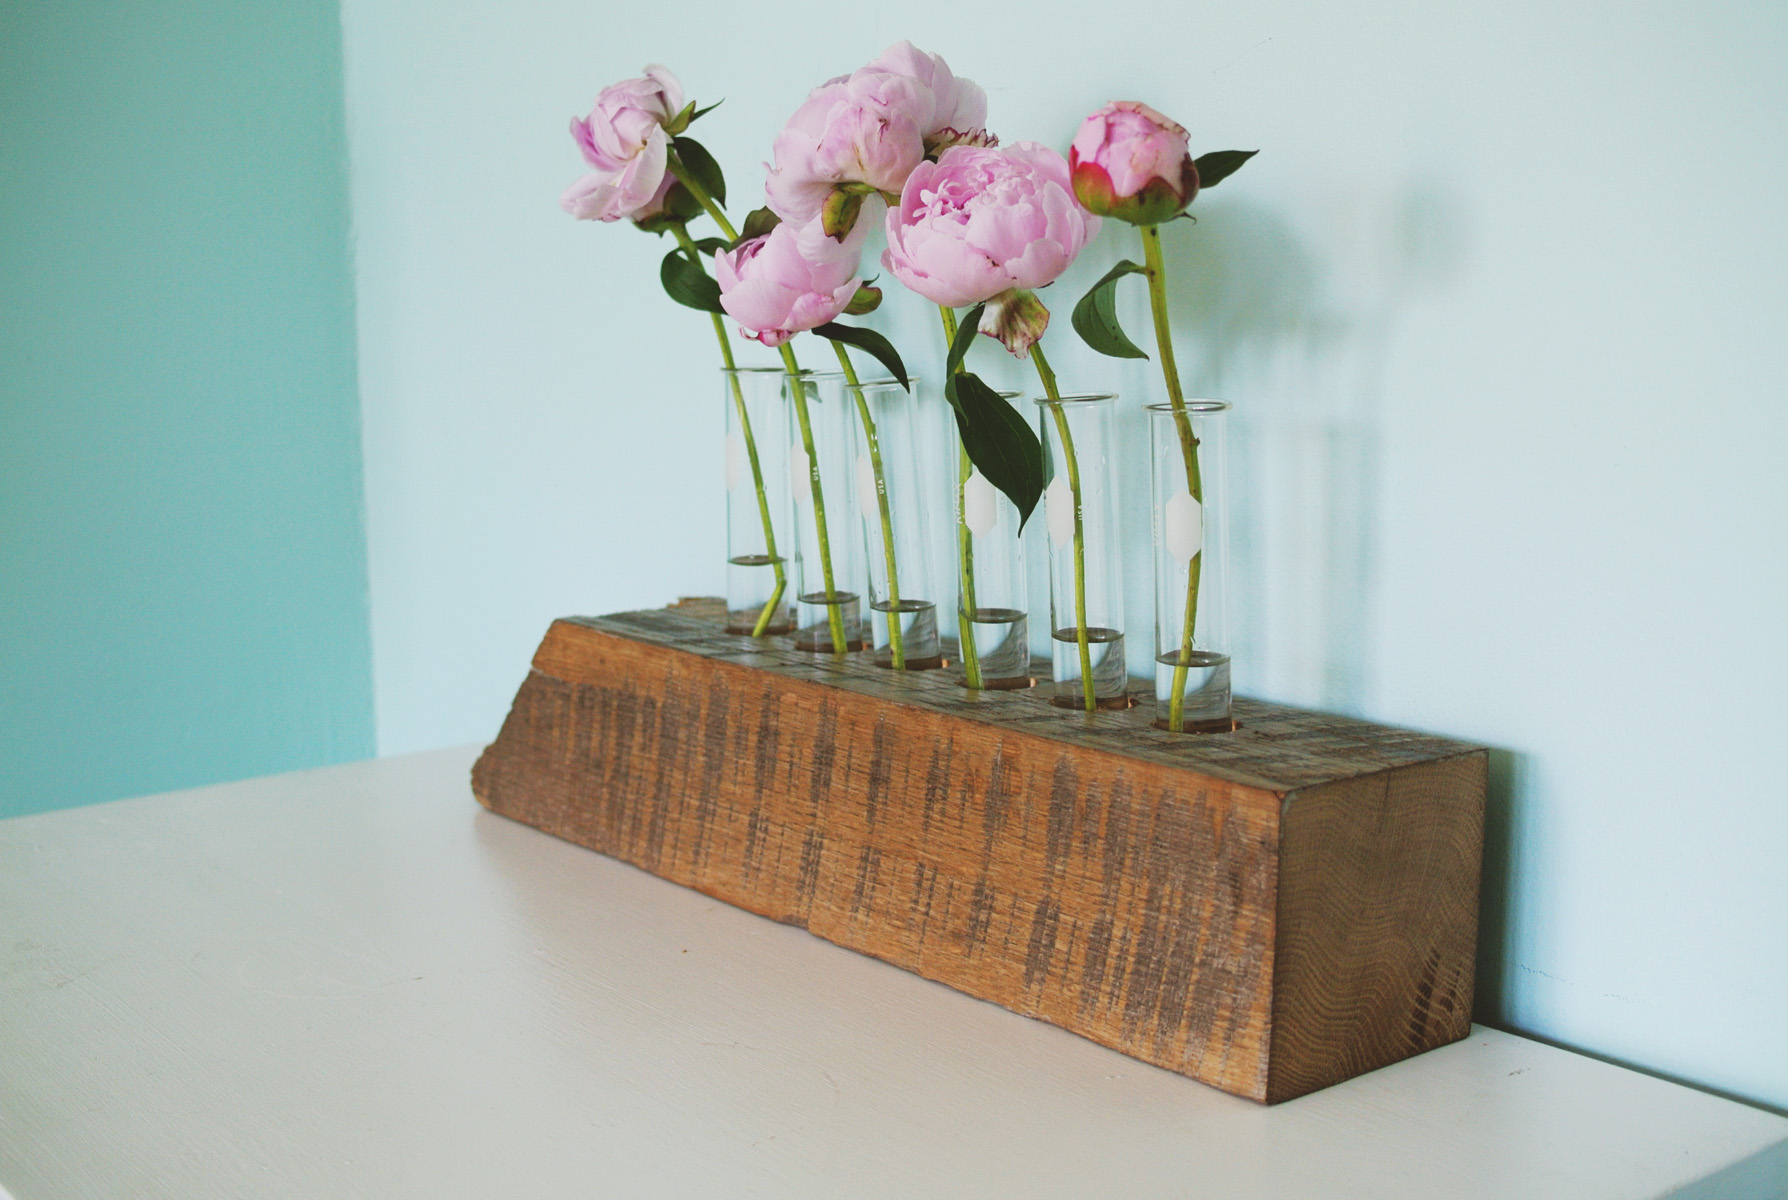 DIY test tube vase instructions